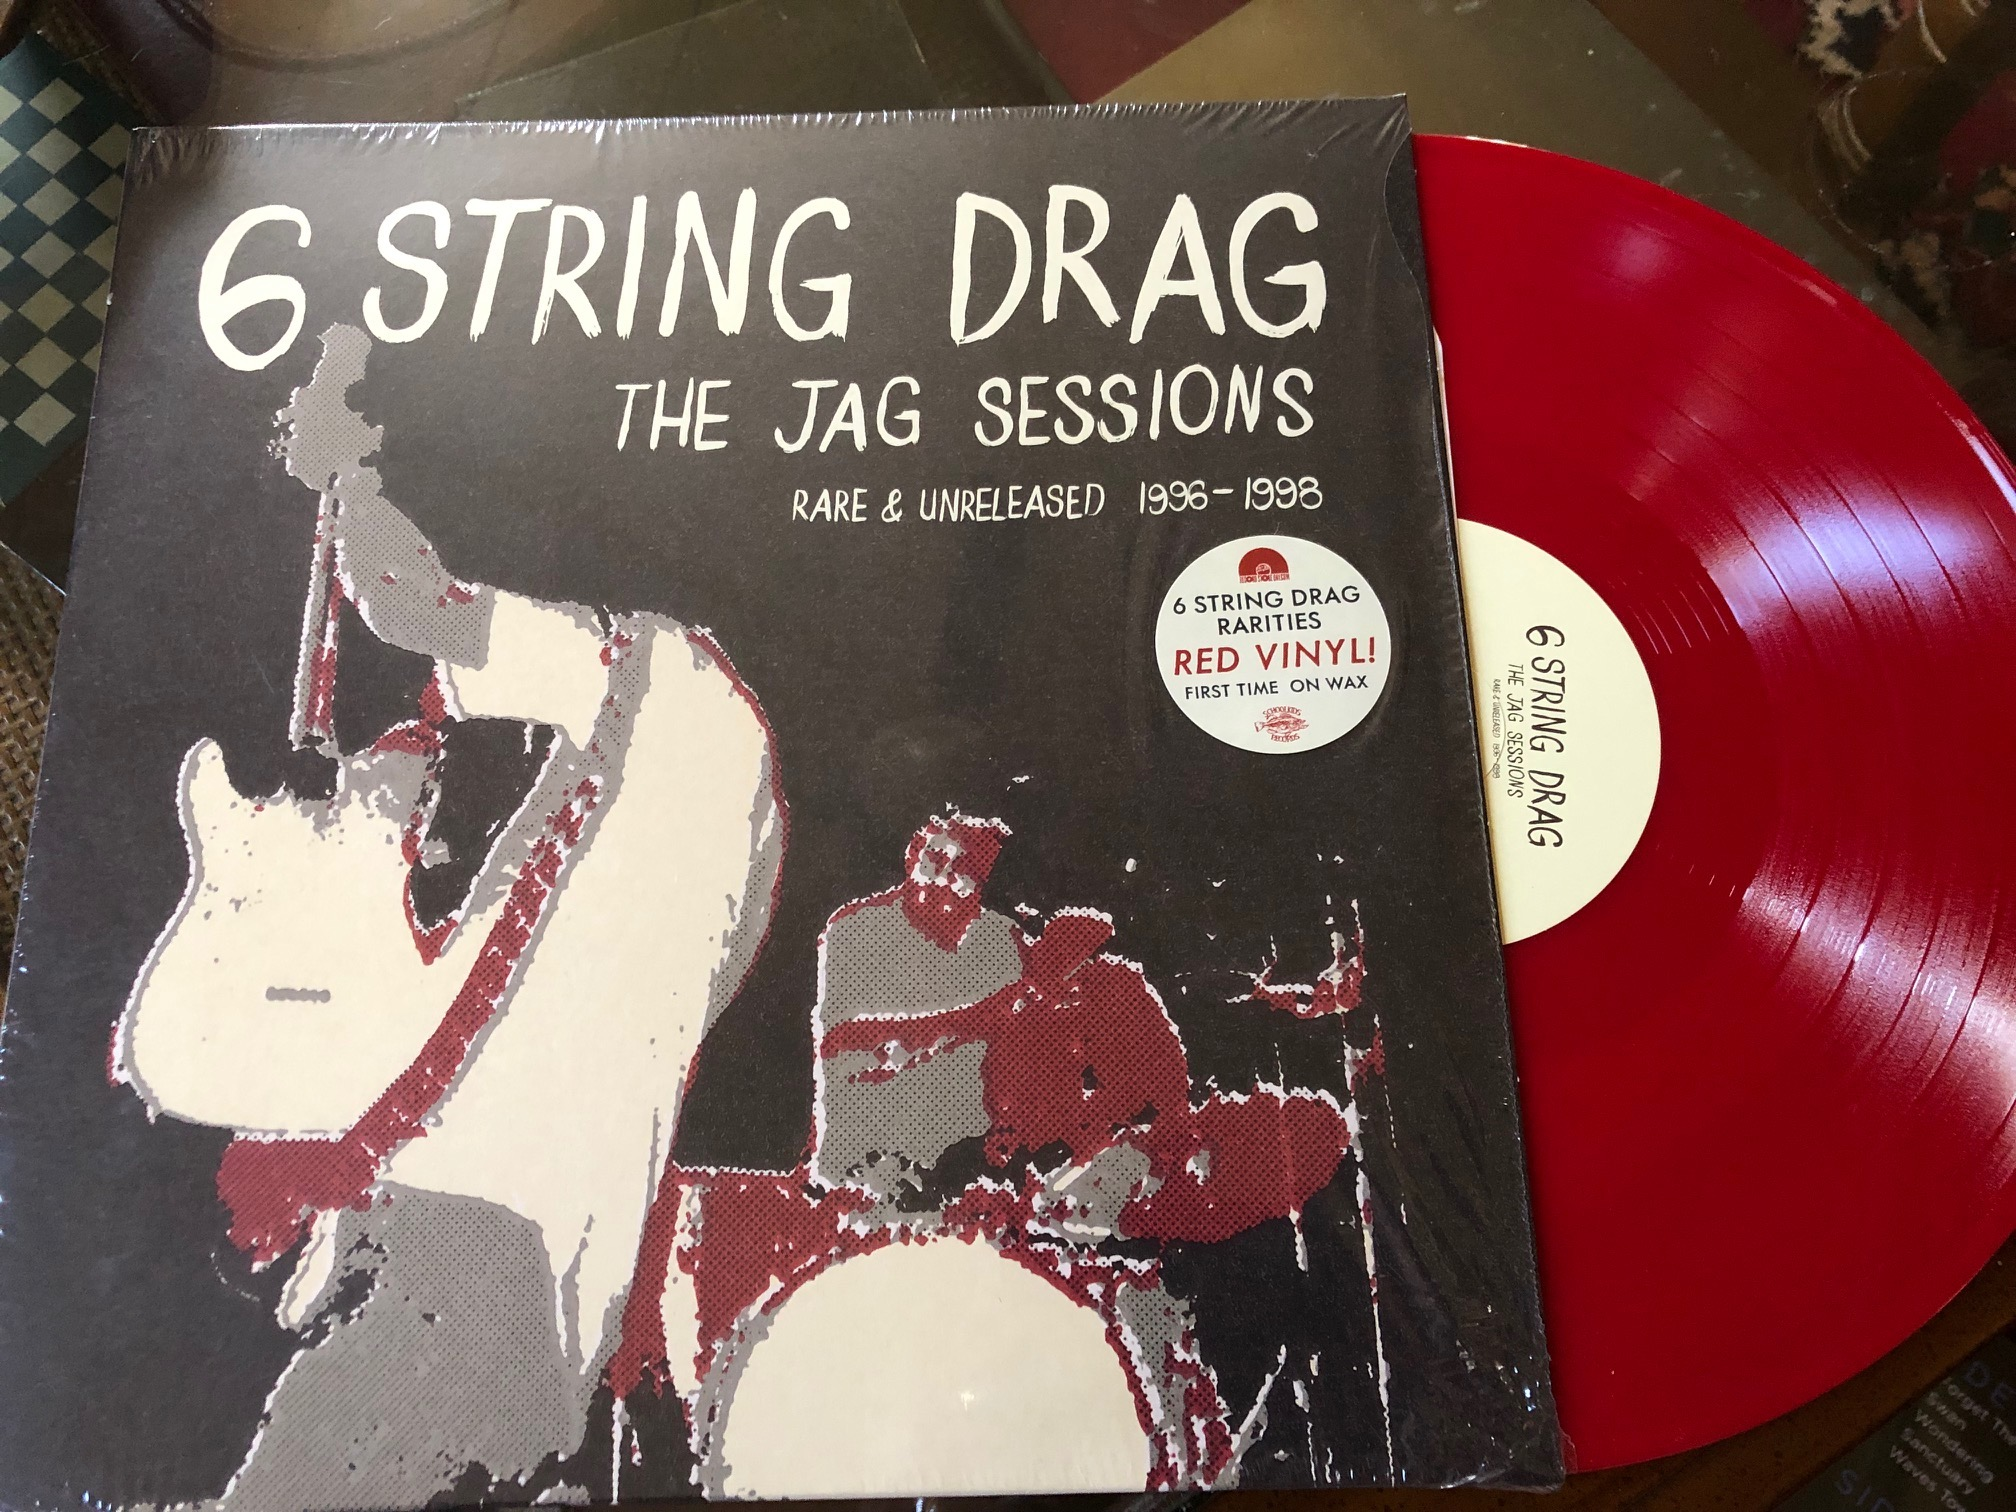 6 String Drag (RSD 2019) still available!